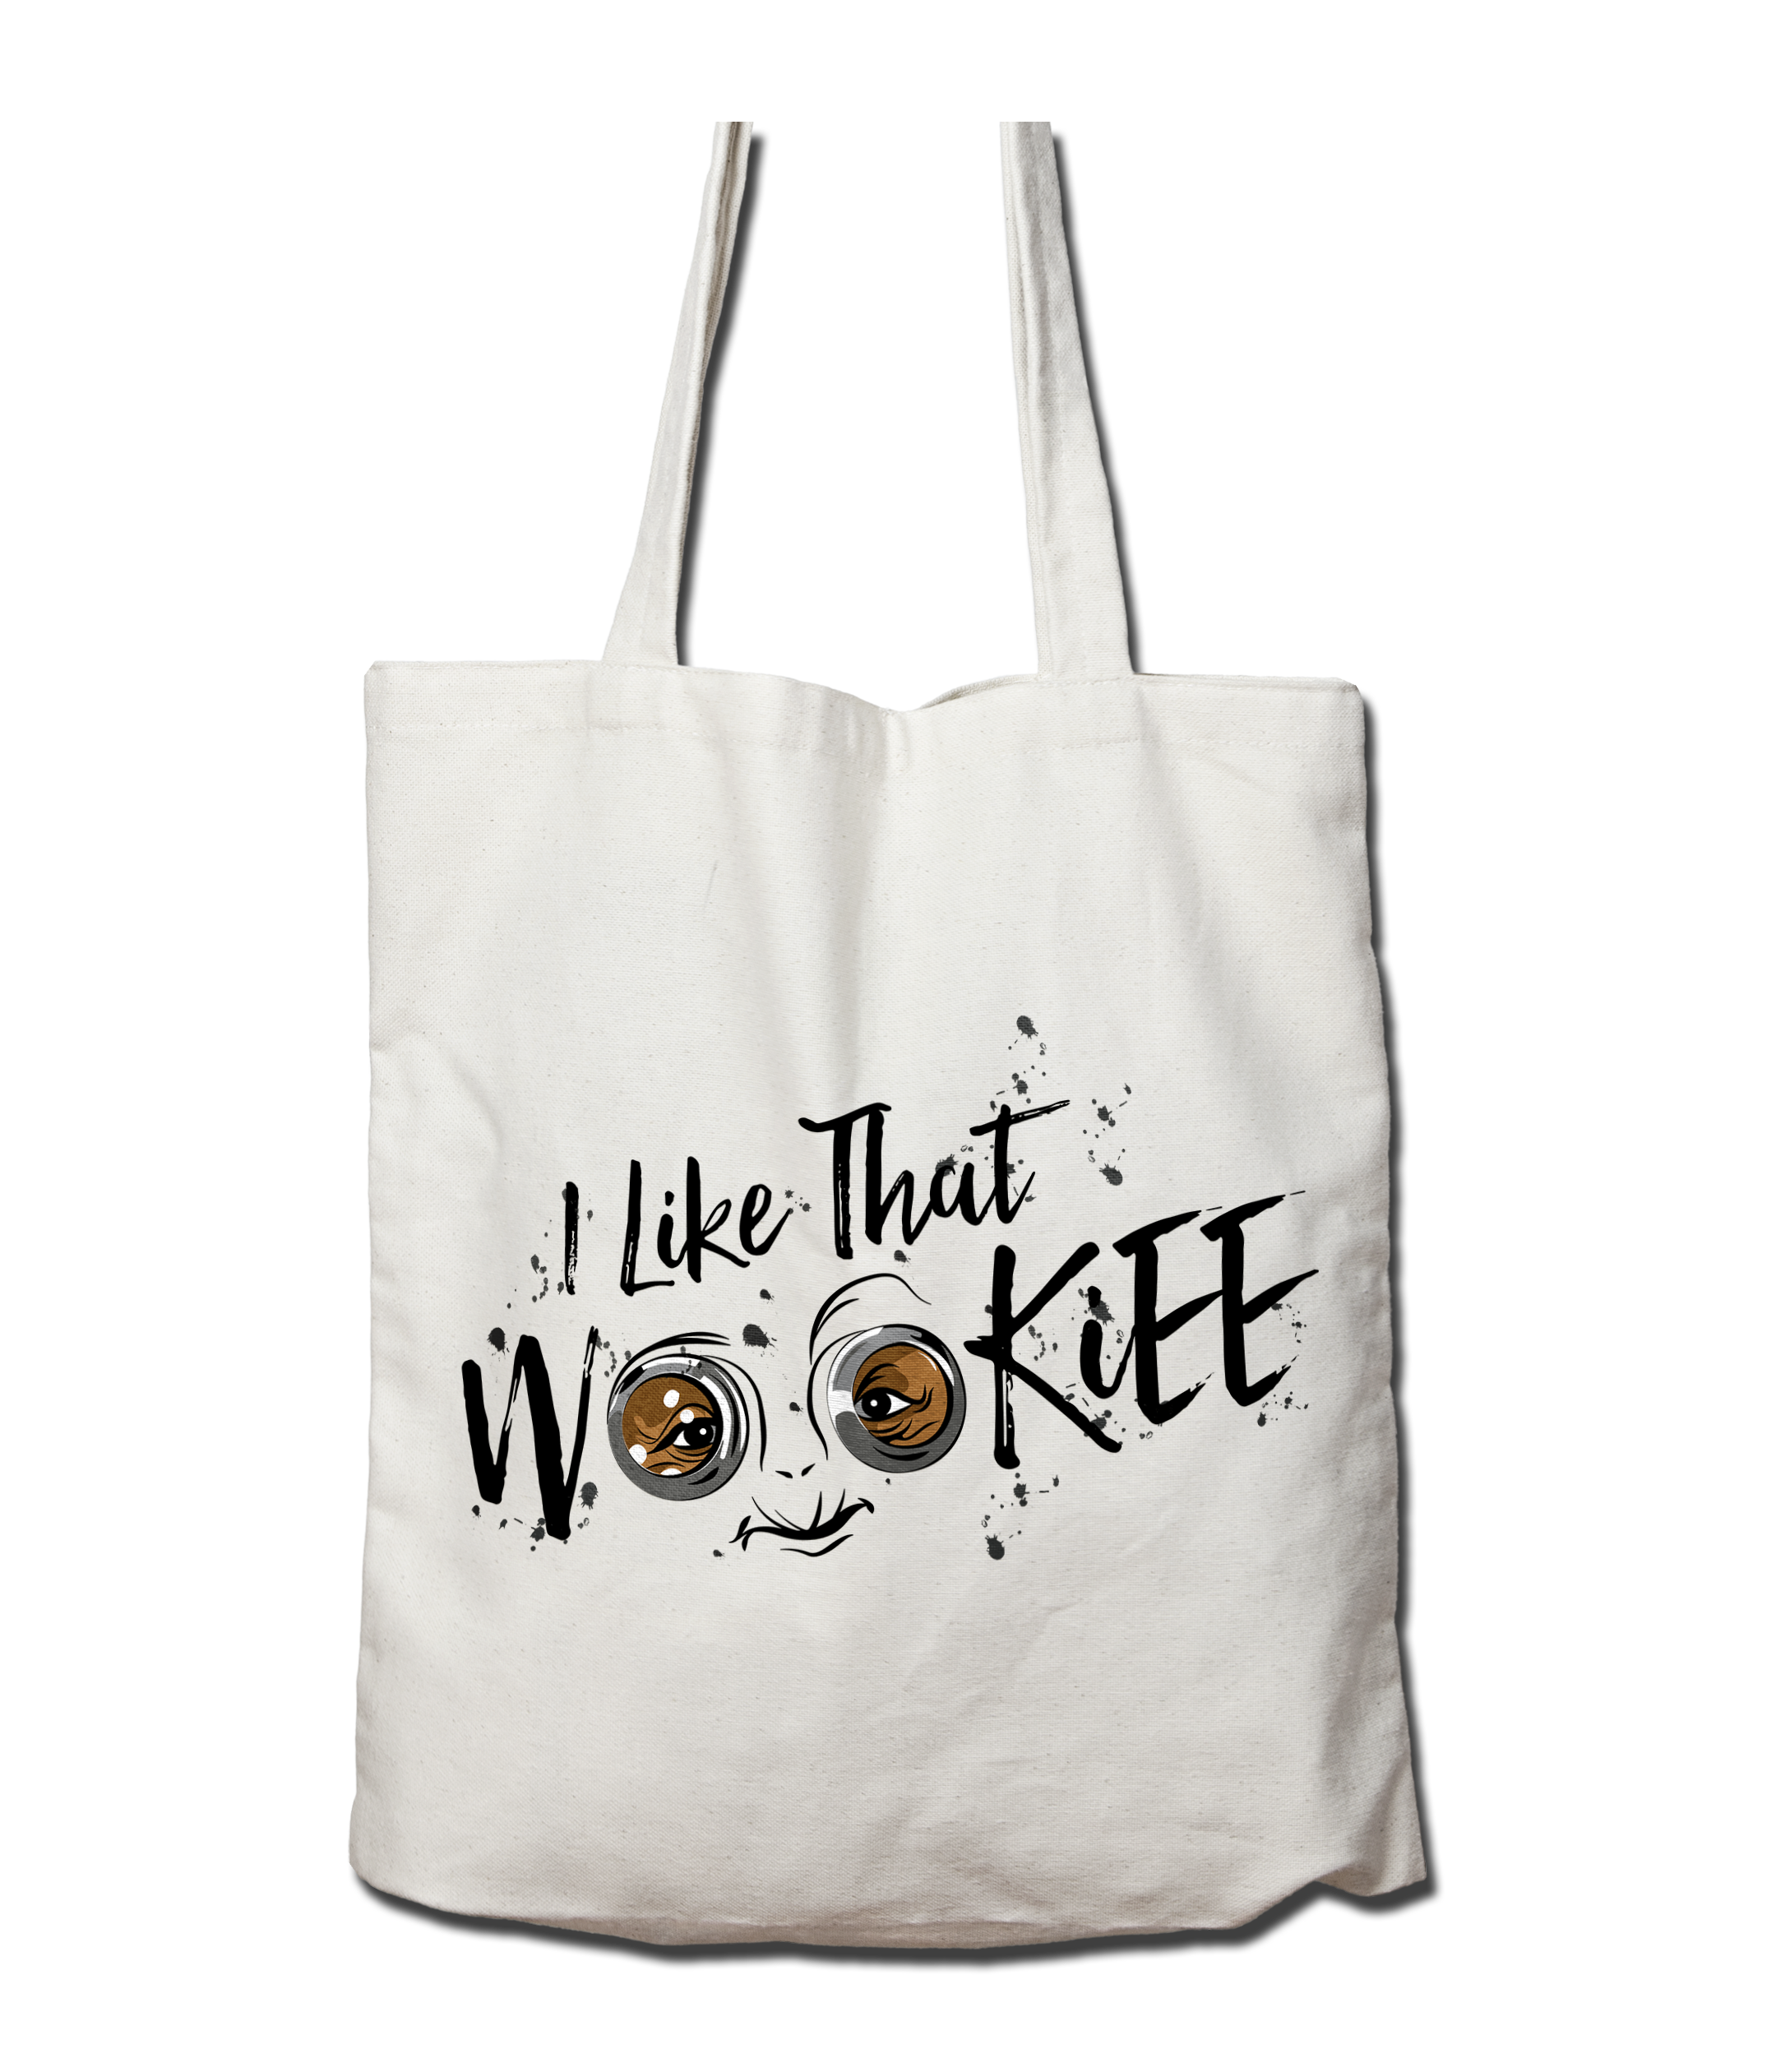 I like that Wookiee Tote Bag